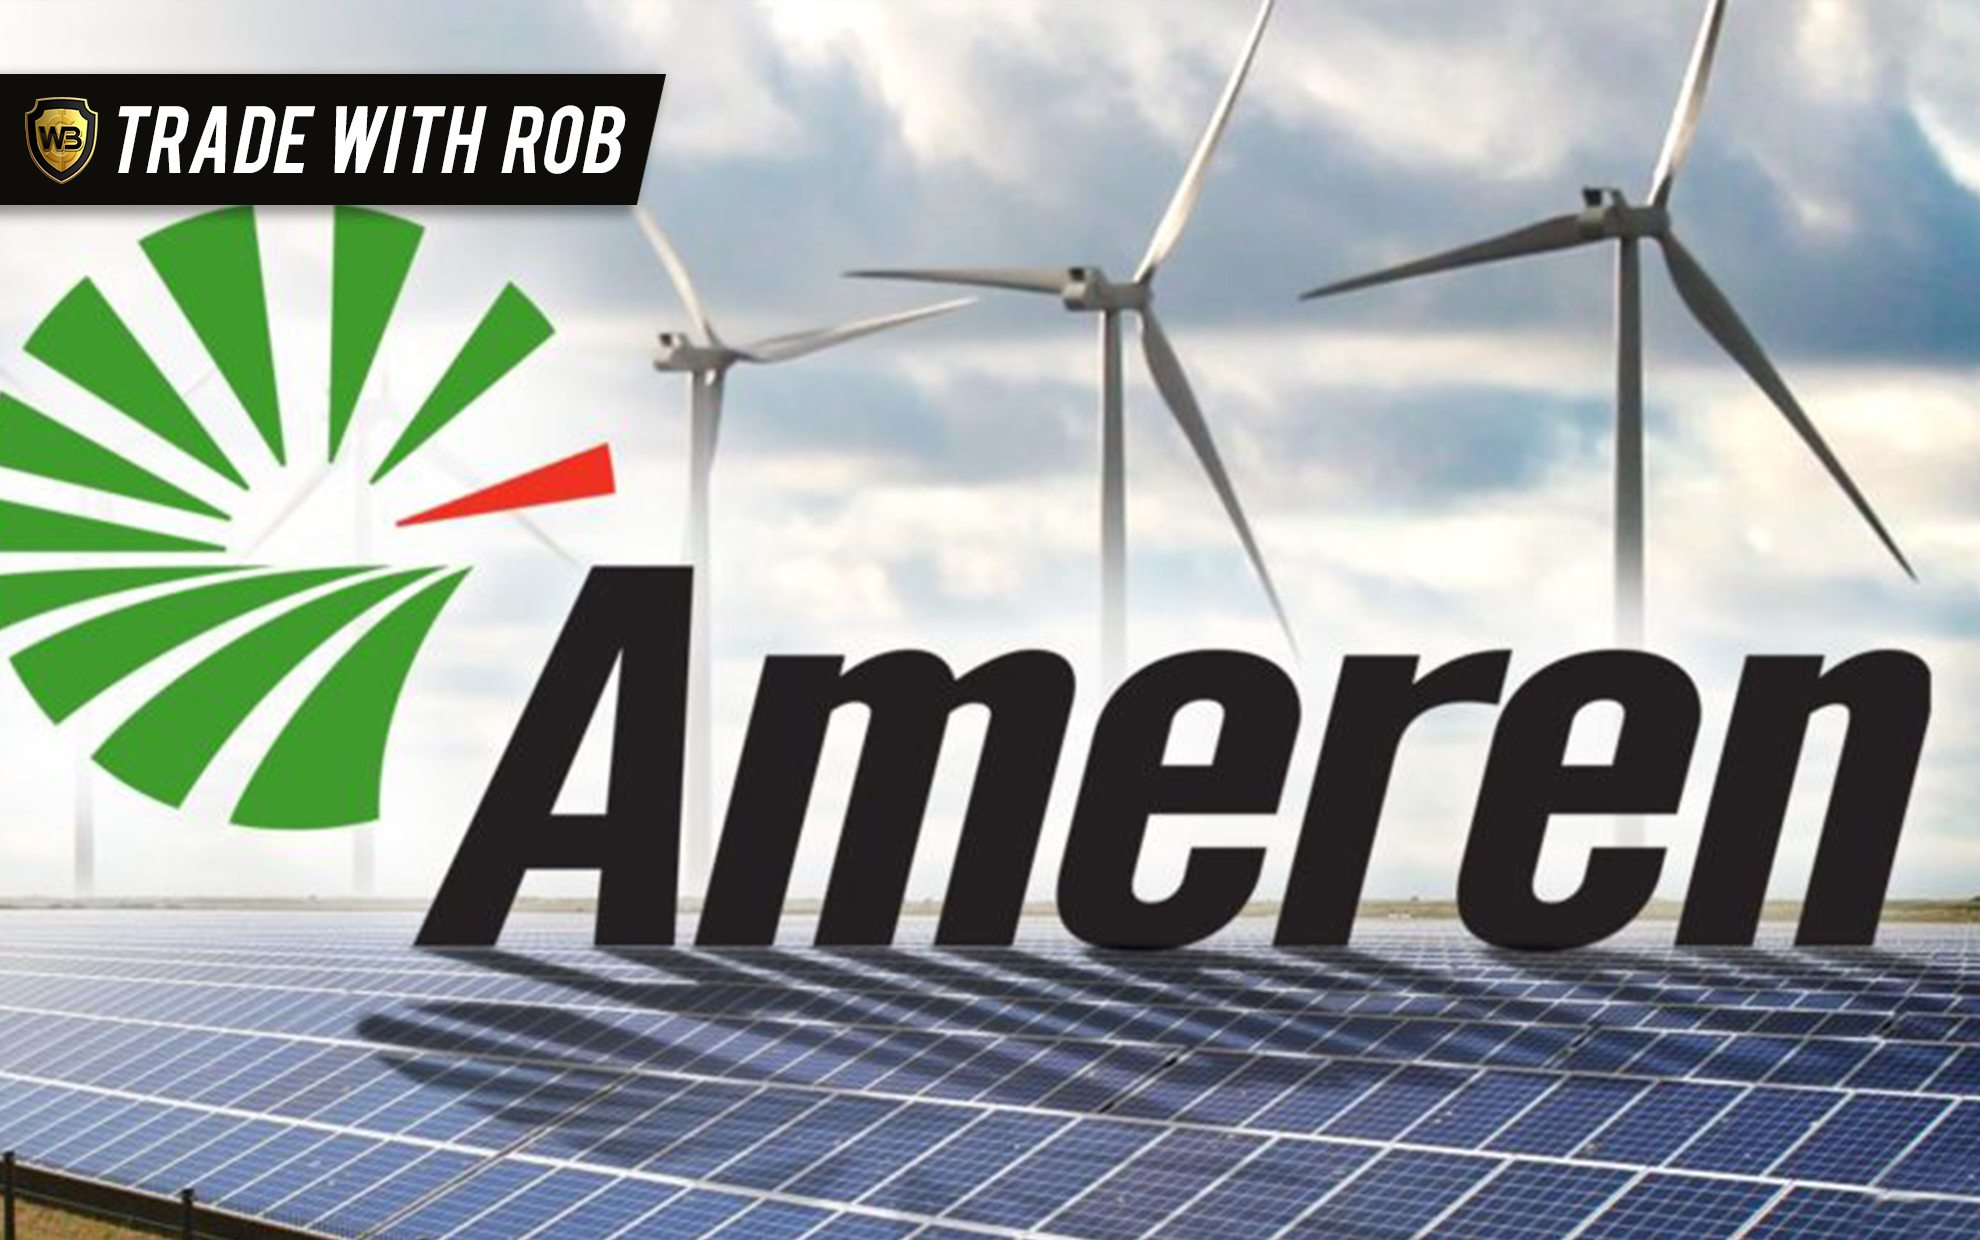 Trade With Rob 4/19/21 – Potential Breakout on AEE